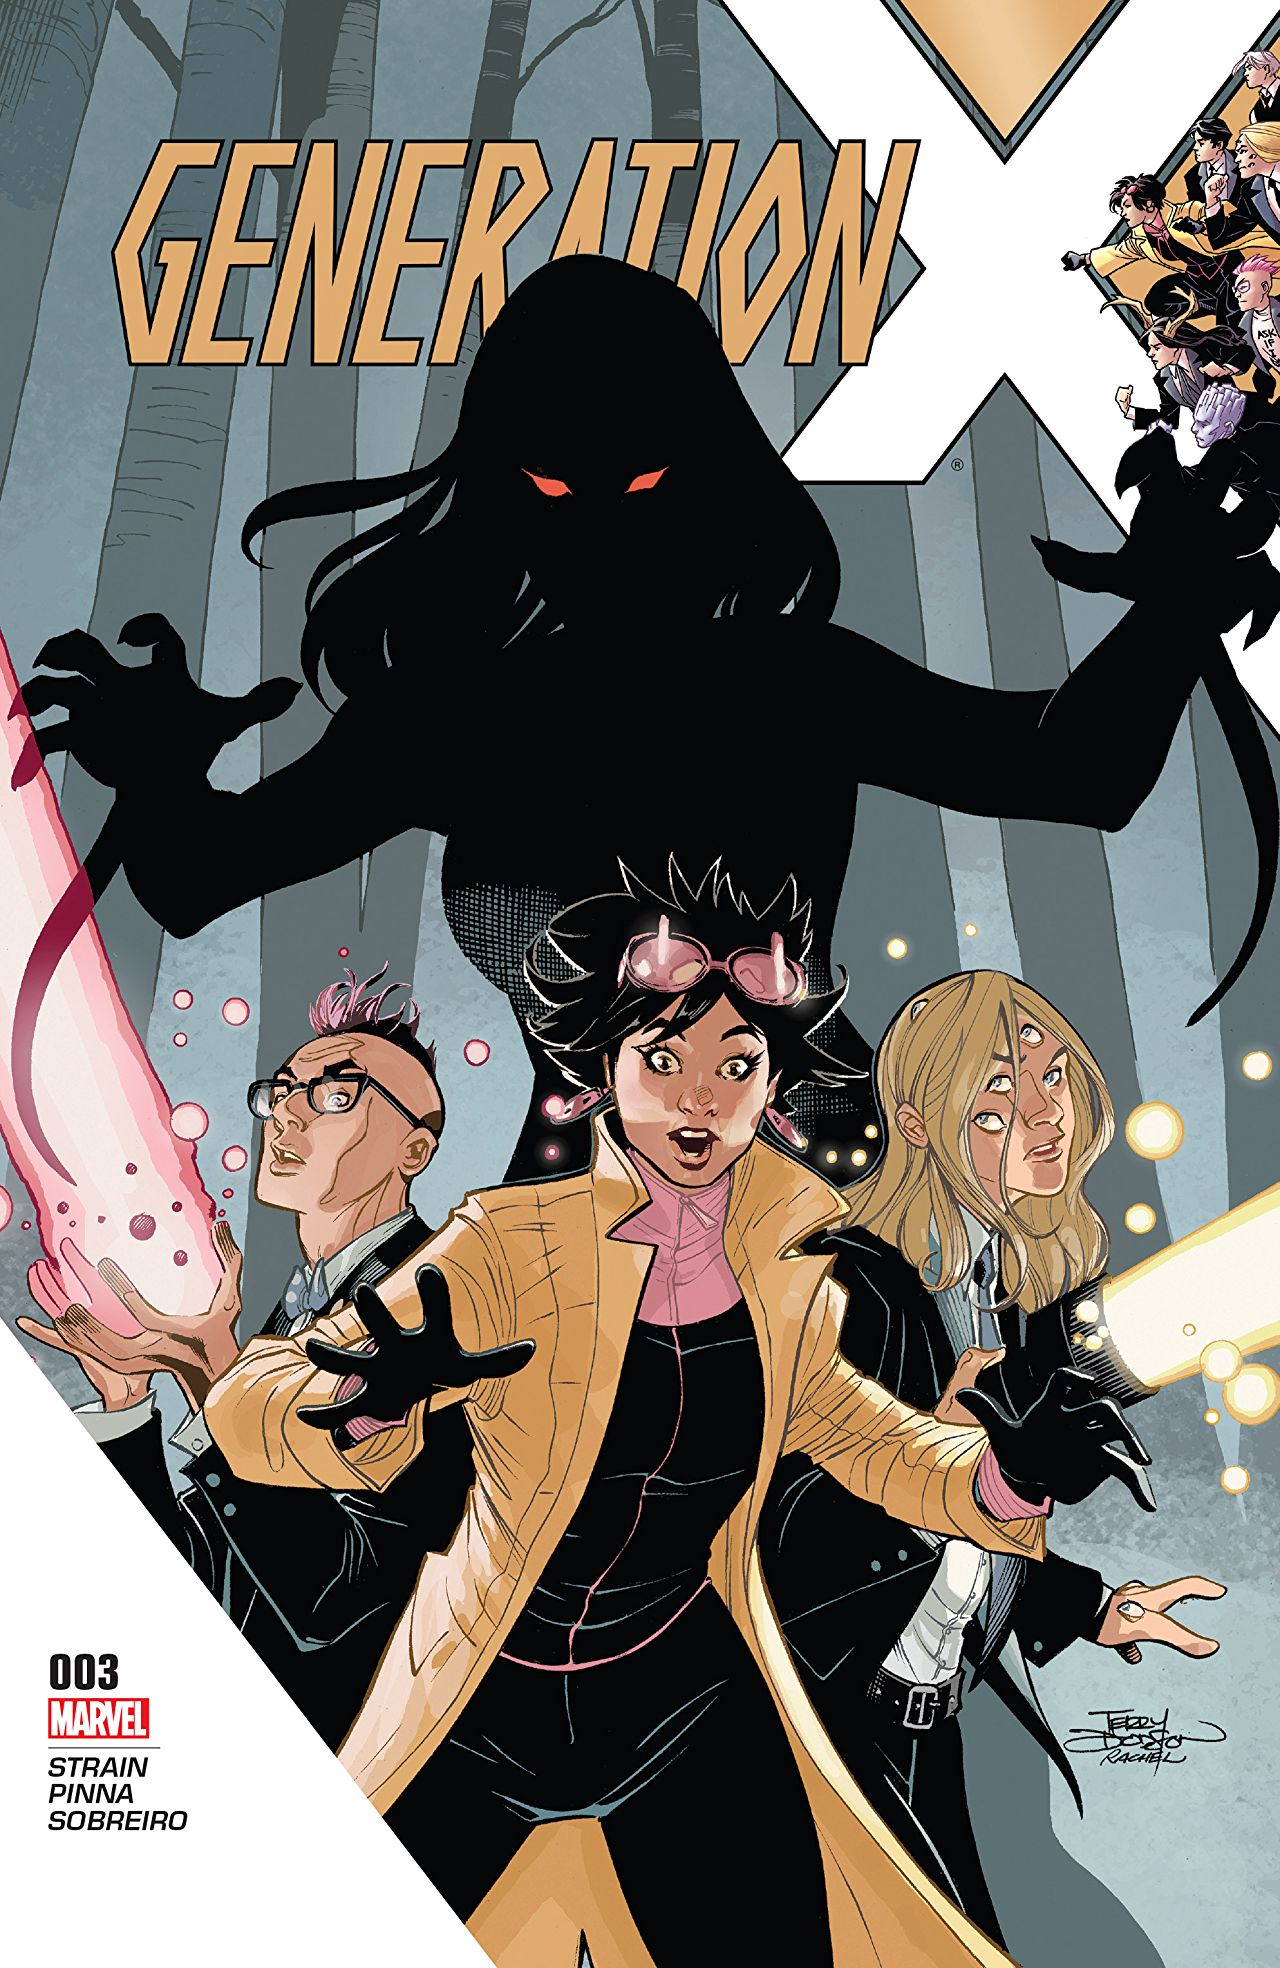 Generation X #3 Review